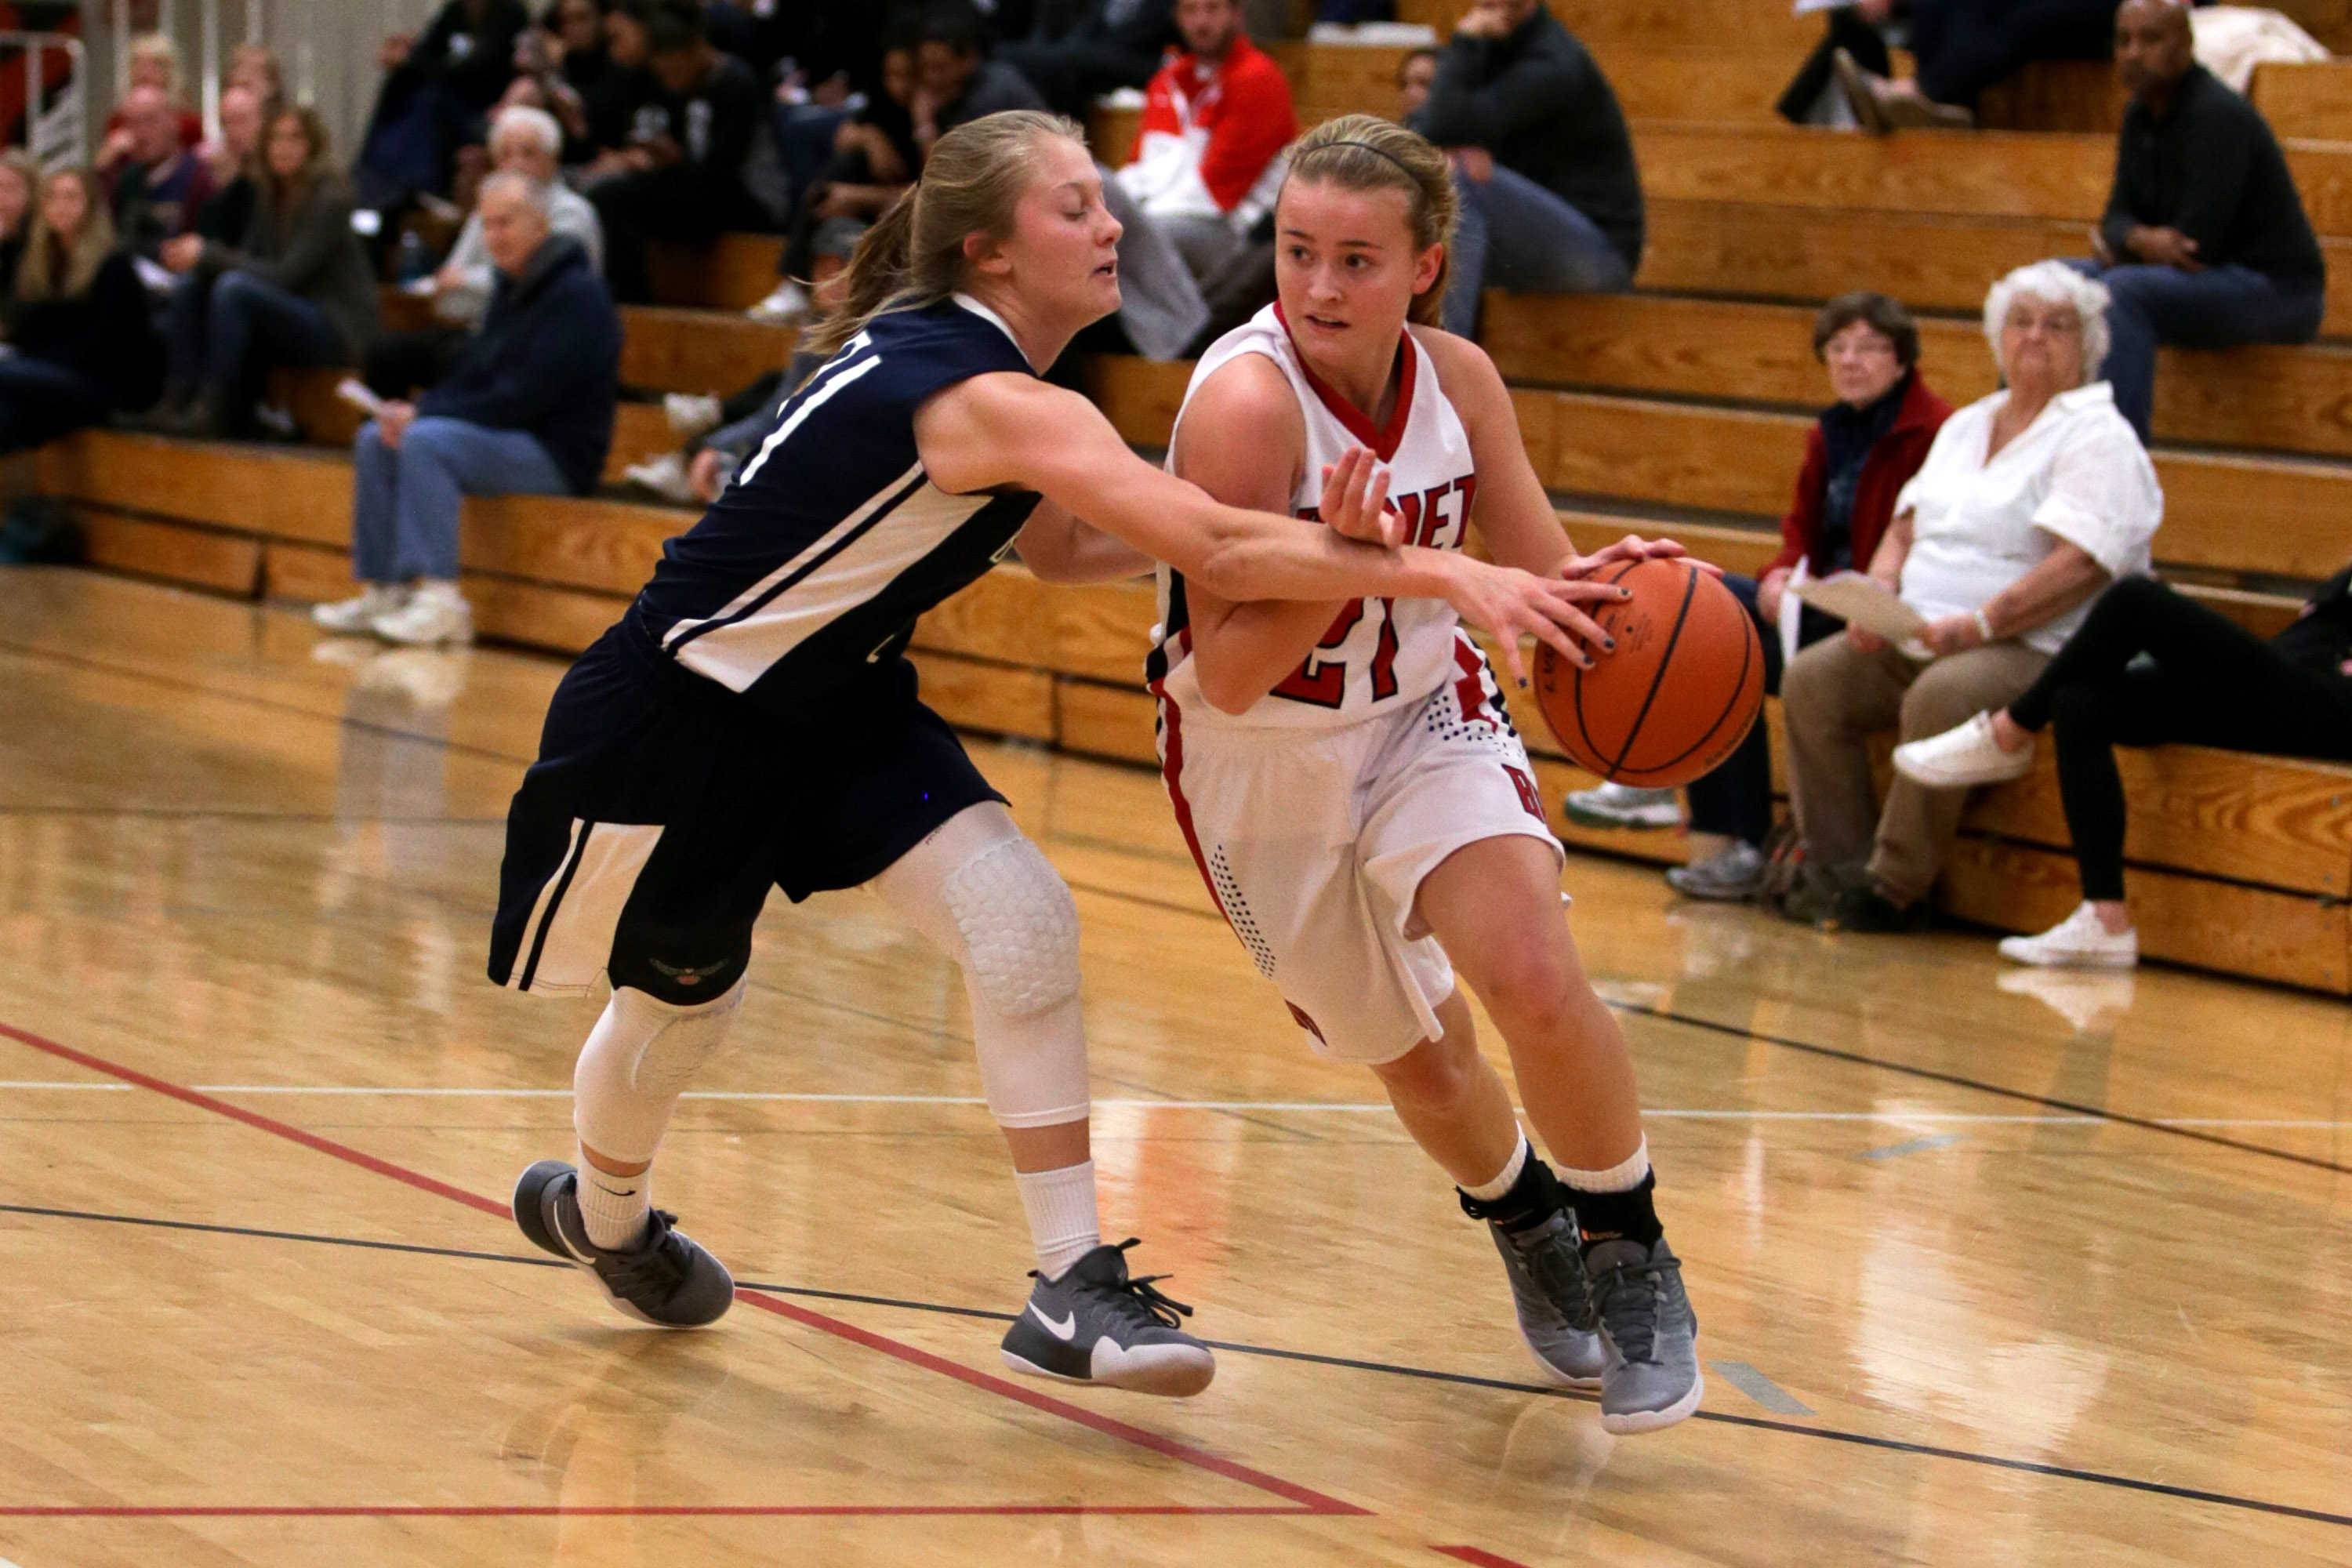 Benet guard Clara Prasse (21) drives to the hoop against Bartlett forward Brooke Bednarke (31) at Benet Academy in Lisle, IL on Friday, November 18, 2016